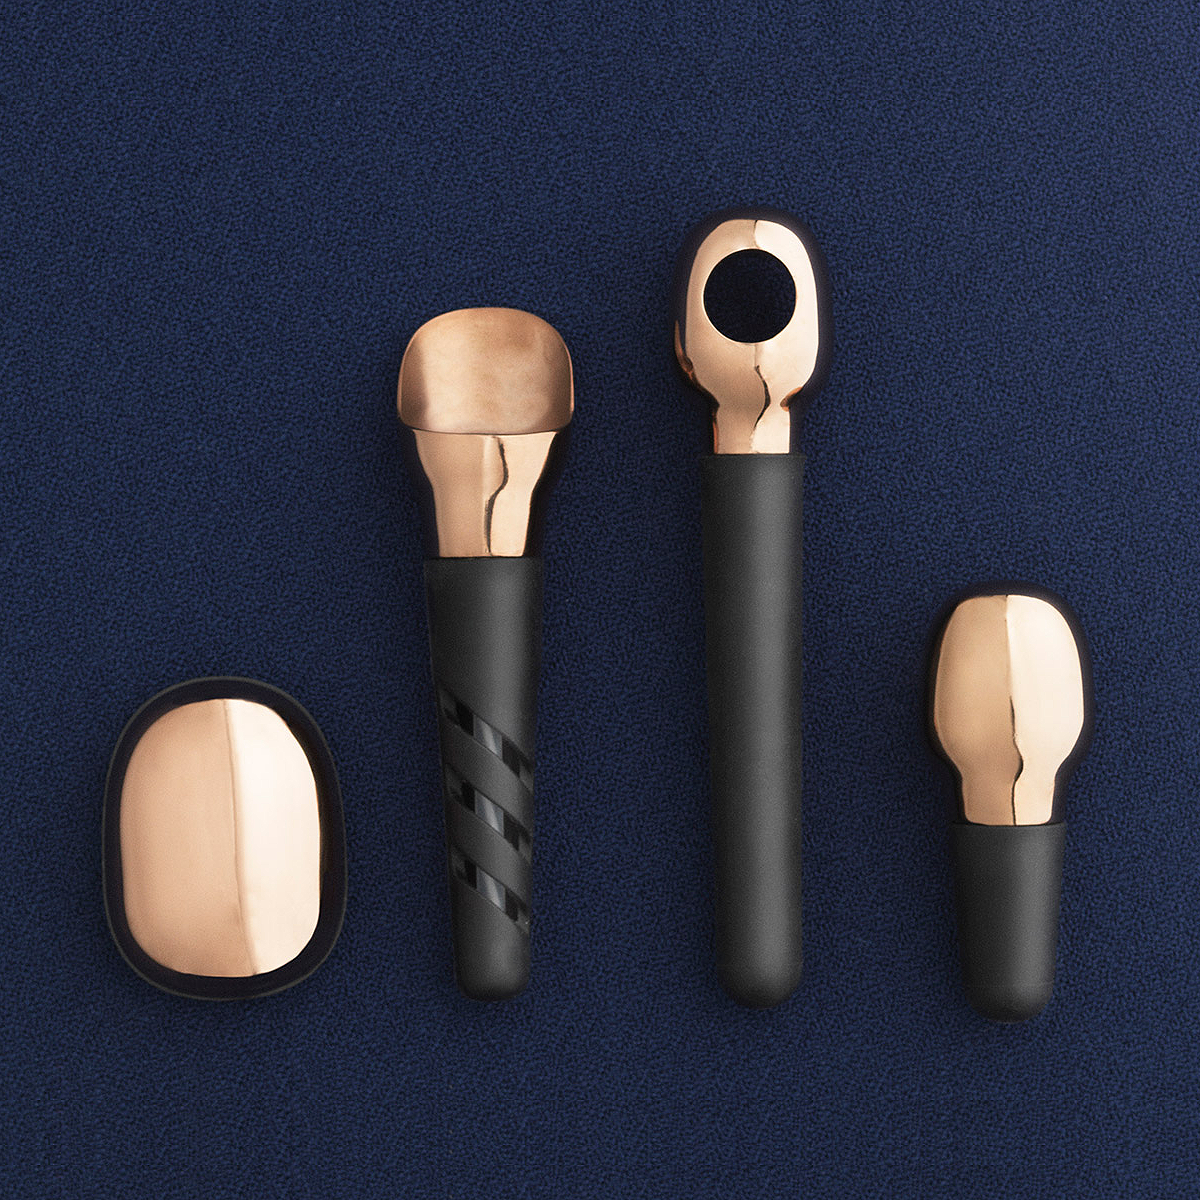 Normann Copenhagen Basic Corkscrew 經典時代 開瓶器